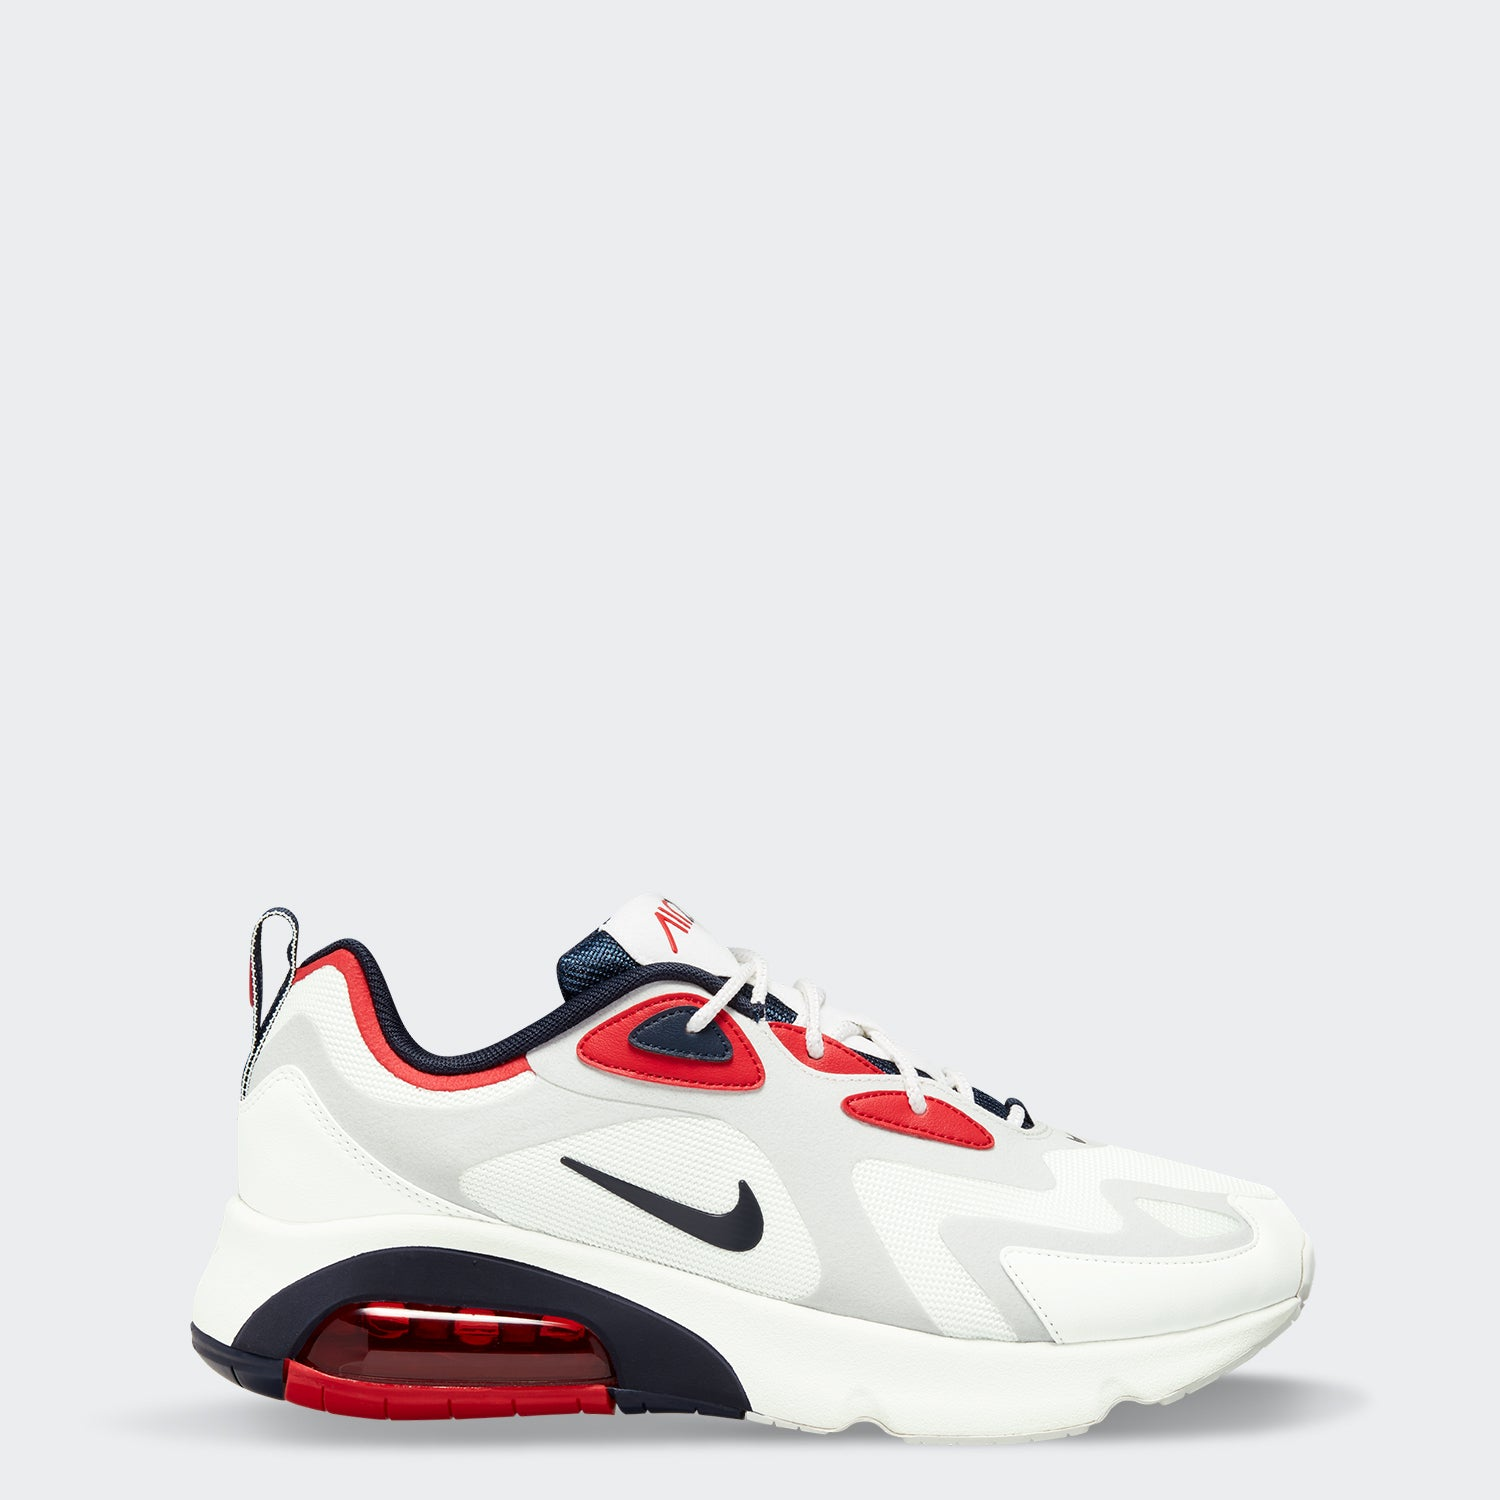 Men's Nike Air Max 200 Shoes White Red CT1262101 | Chicago ...